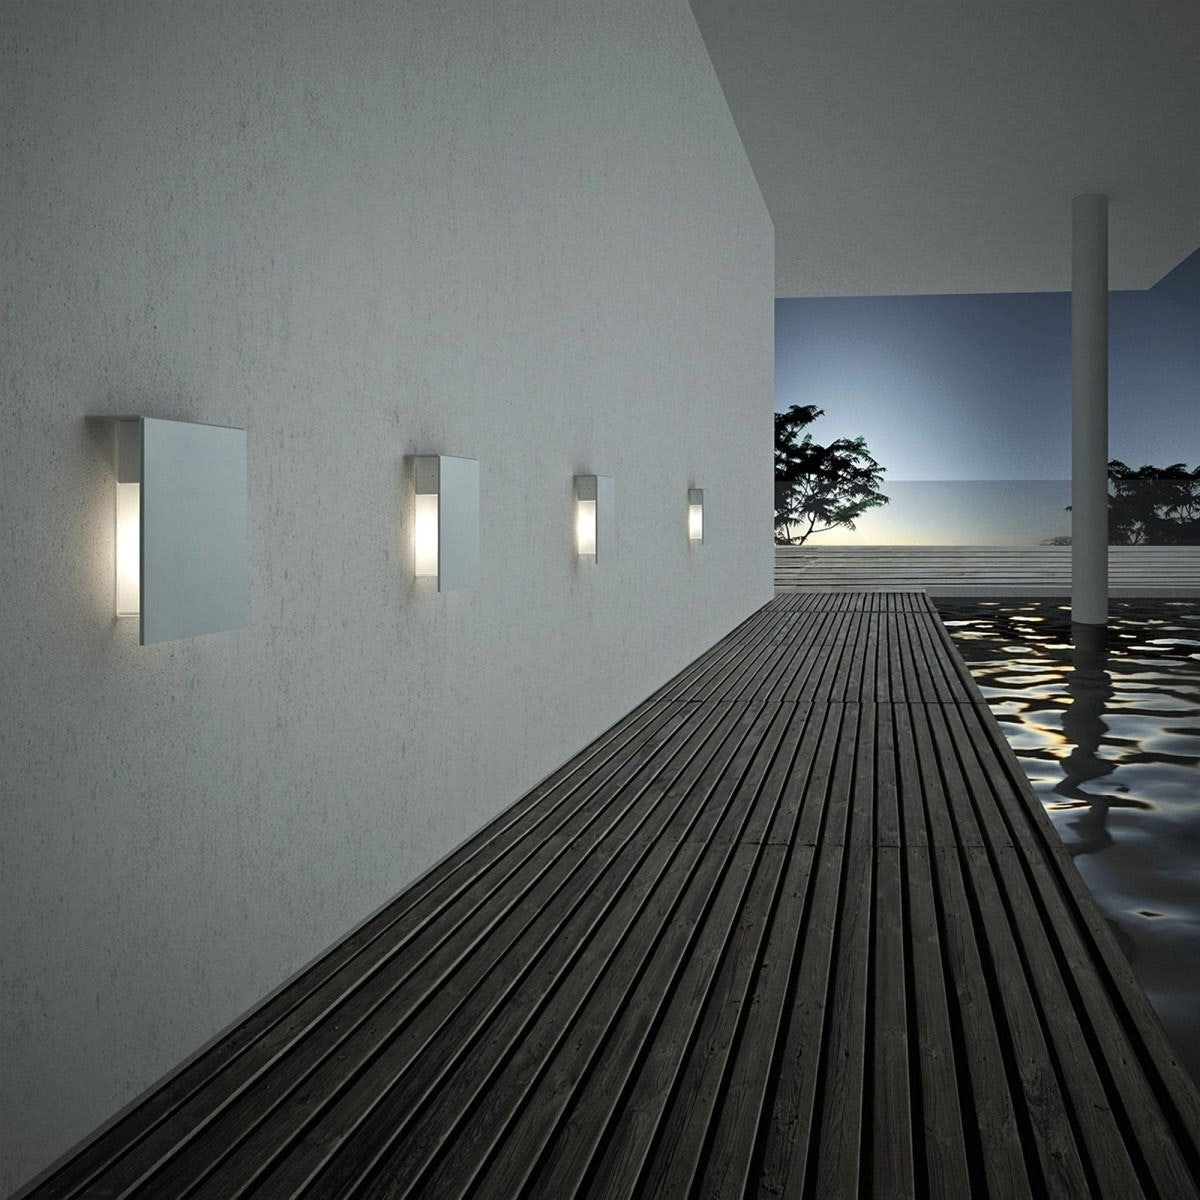 Architectural Outdoor Wall Lighting Within 2018 Top Architectural Outdoor Wall Lighting Ideas (View 10 of 20)